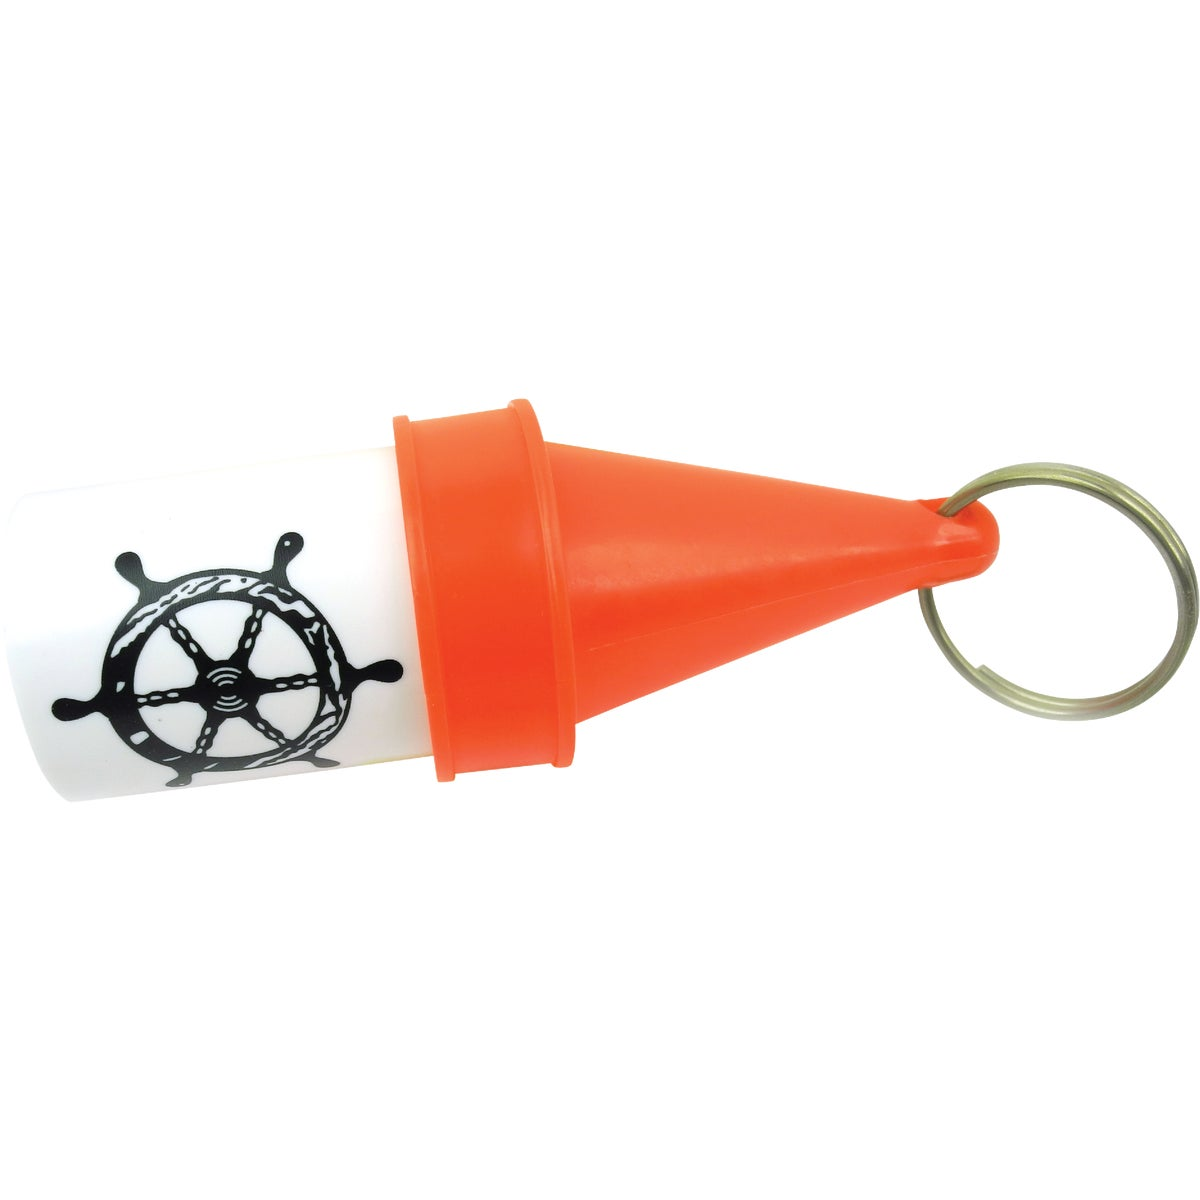 RED FLOATING KEY BUOY - 78081 by Seachoice Prod